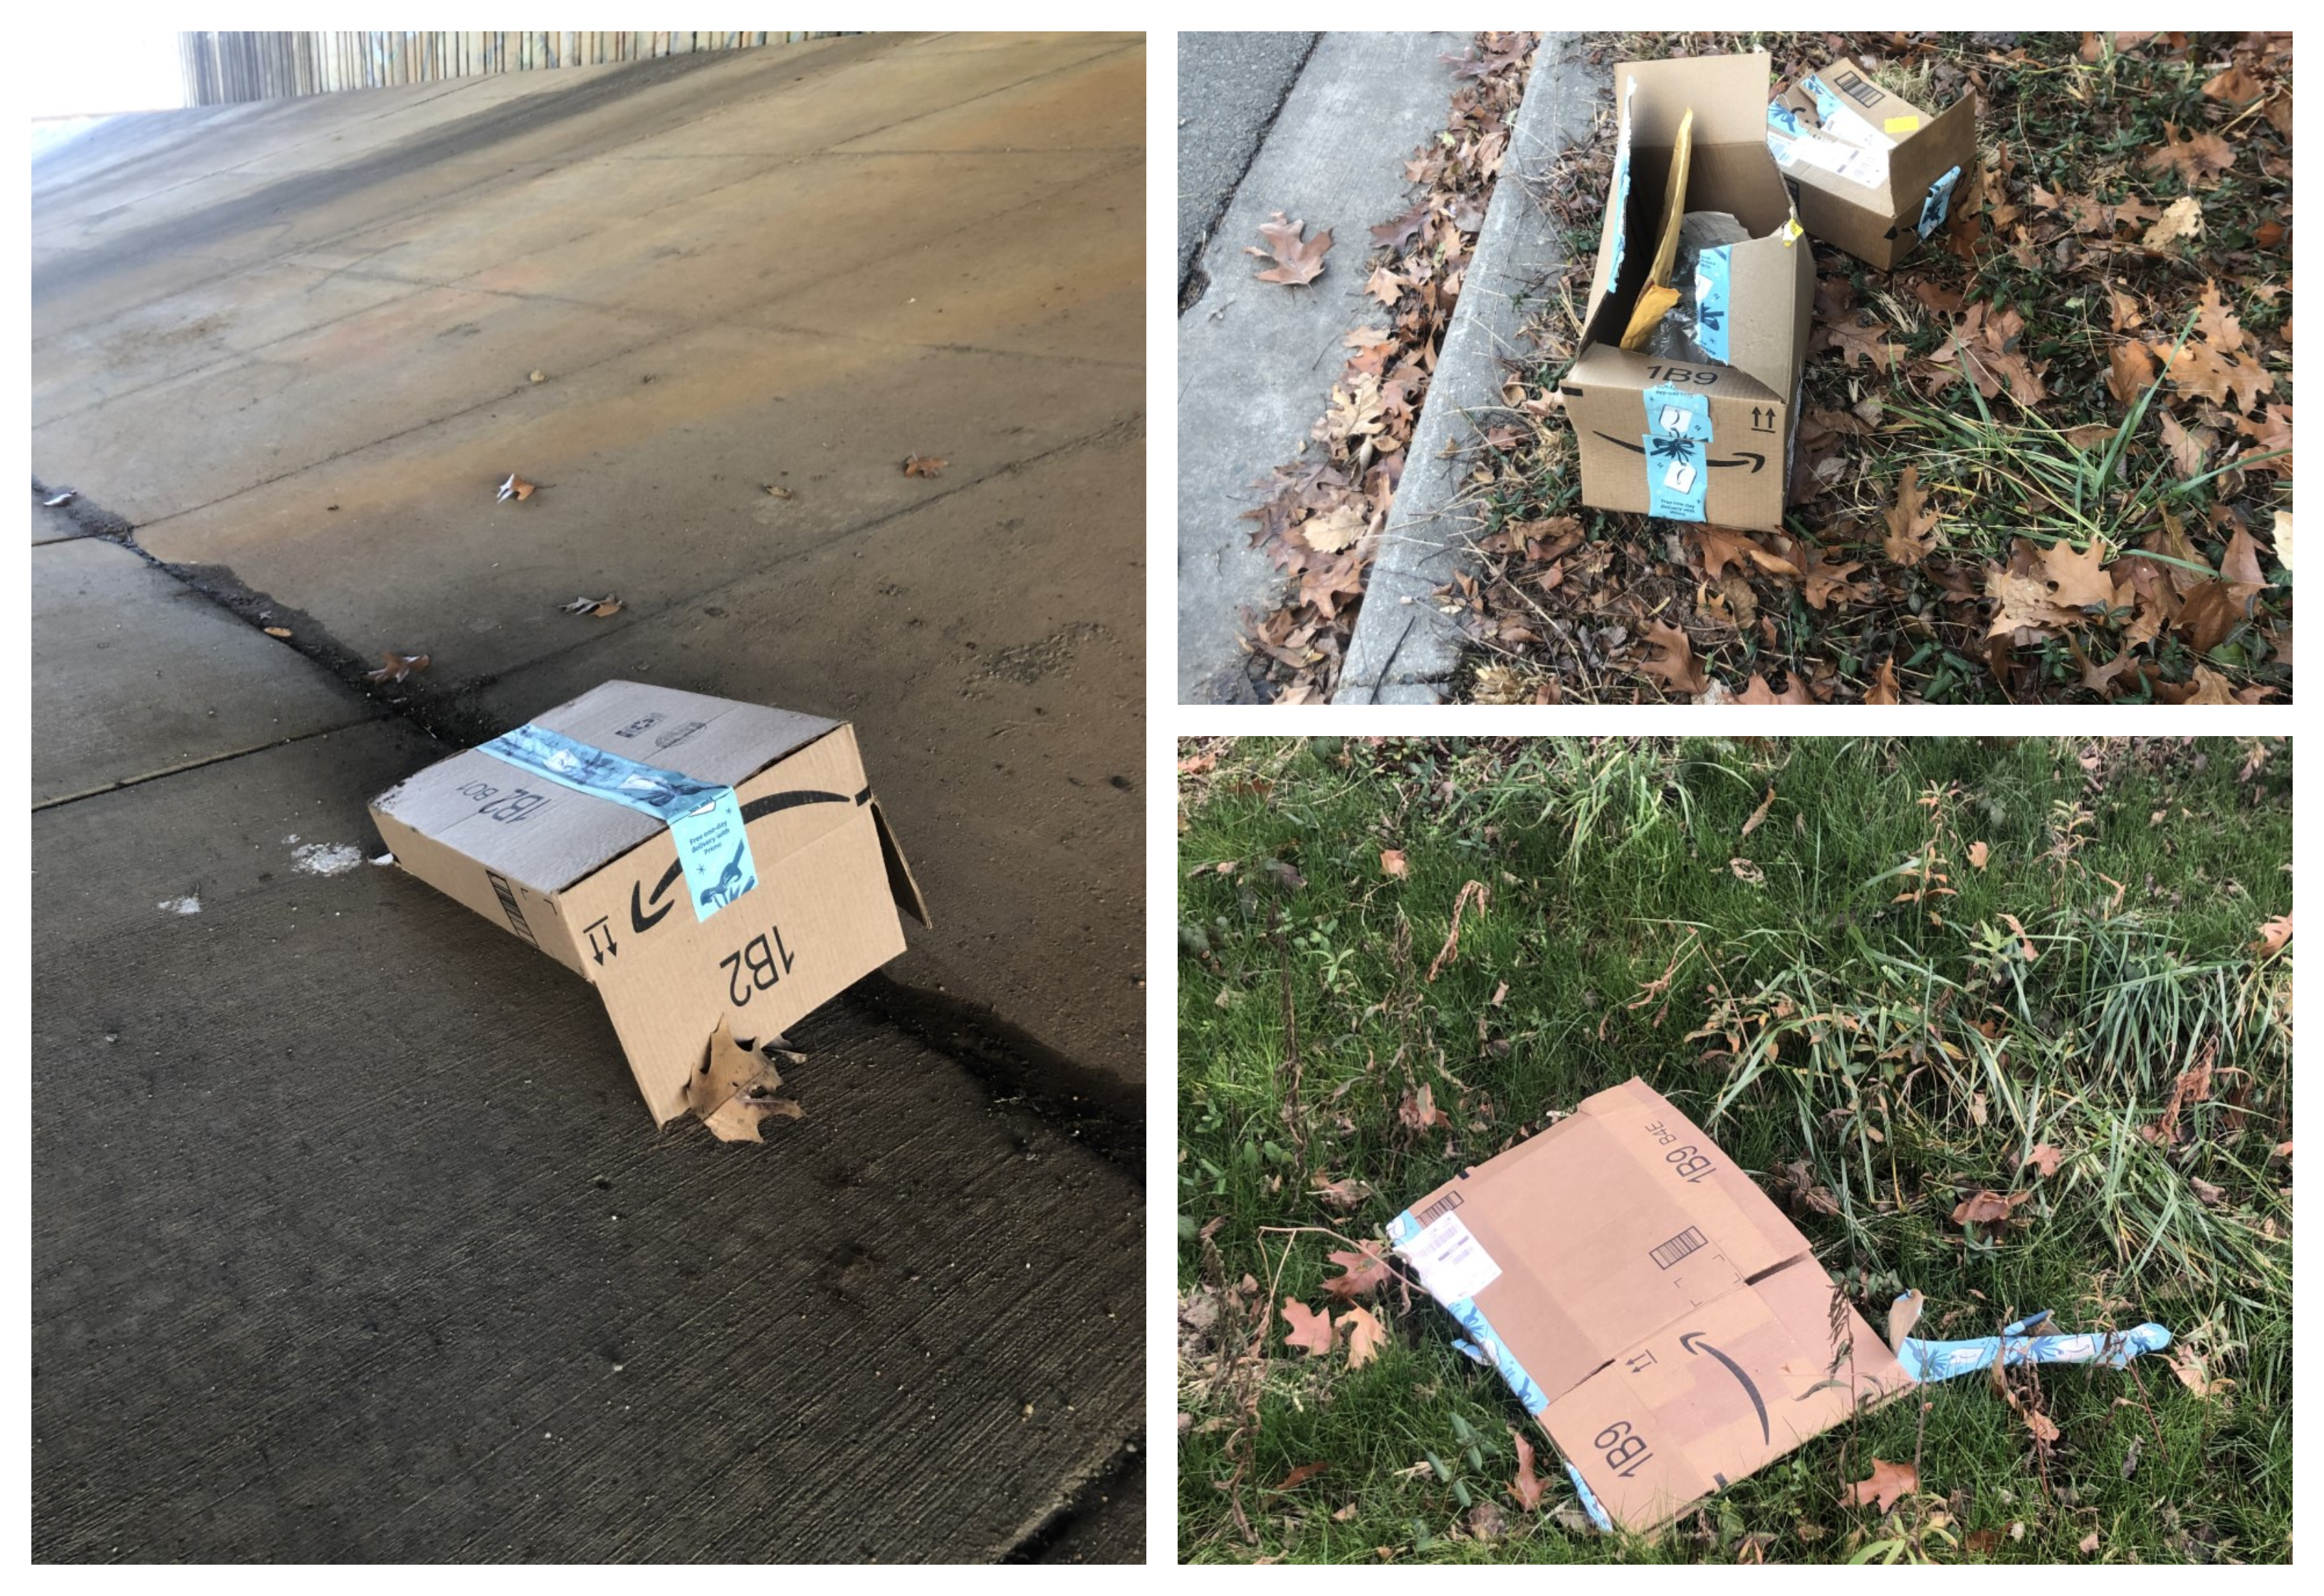 Neighbors Puzzled By Ripped Open Discarded Amazon Boxes 8news